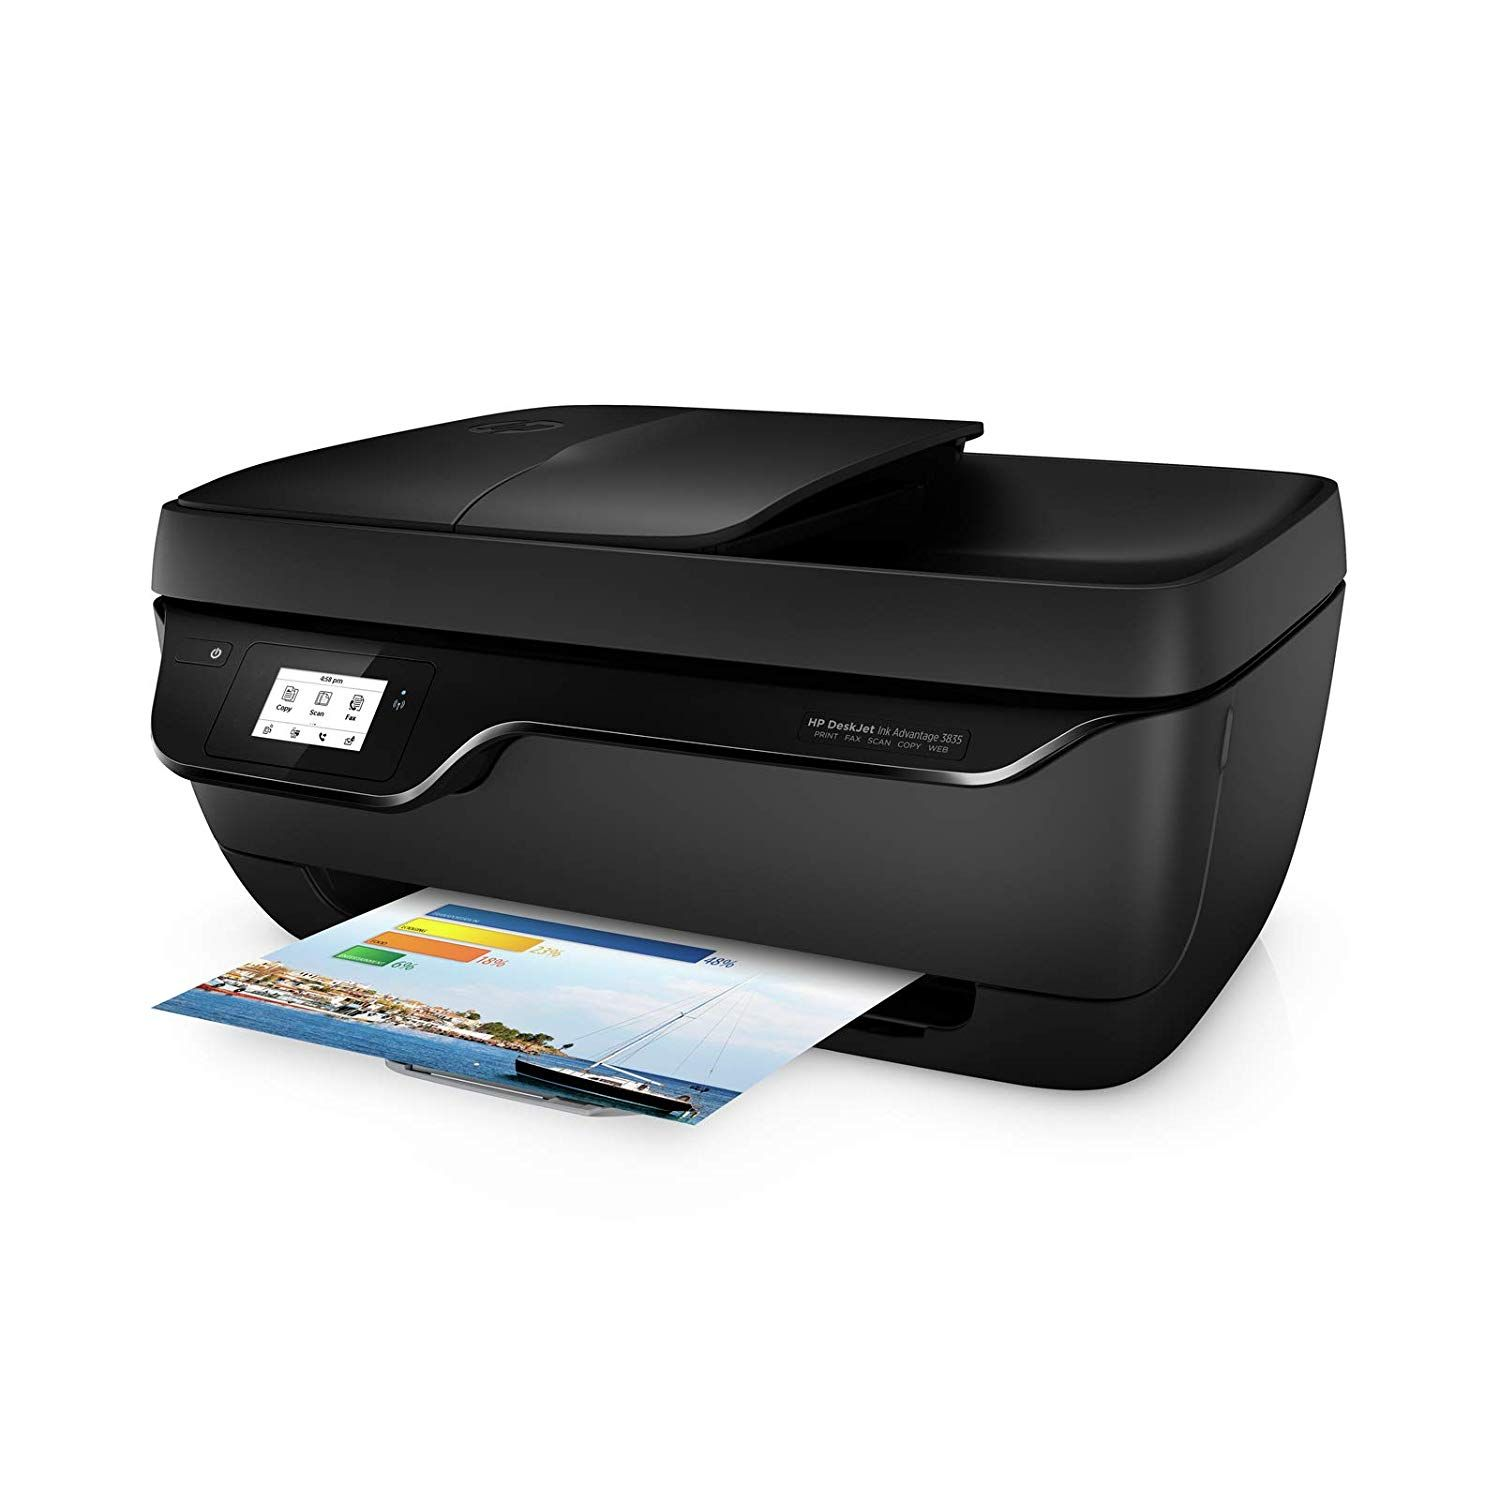 Best Printer Under Rs 3000 For Home Or Office Use Hp Officejet Printer Hp Printer